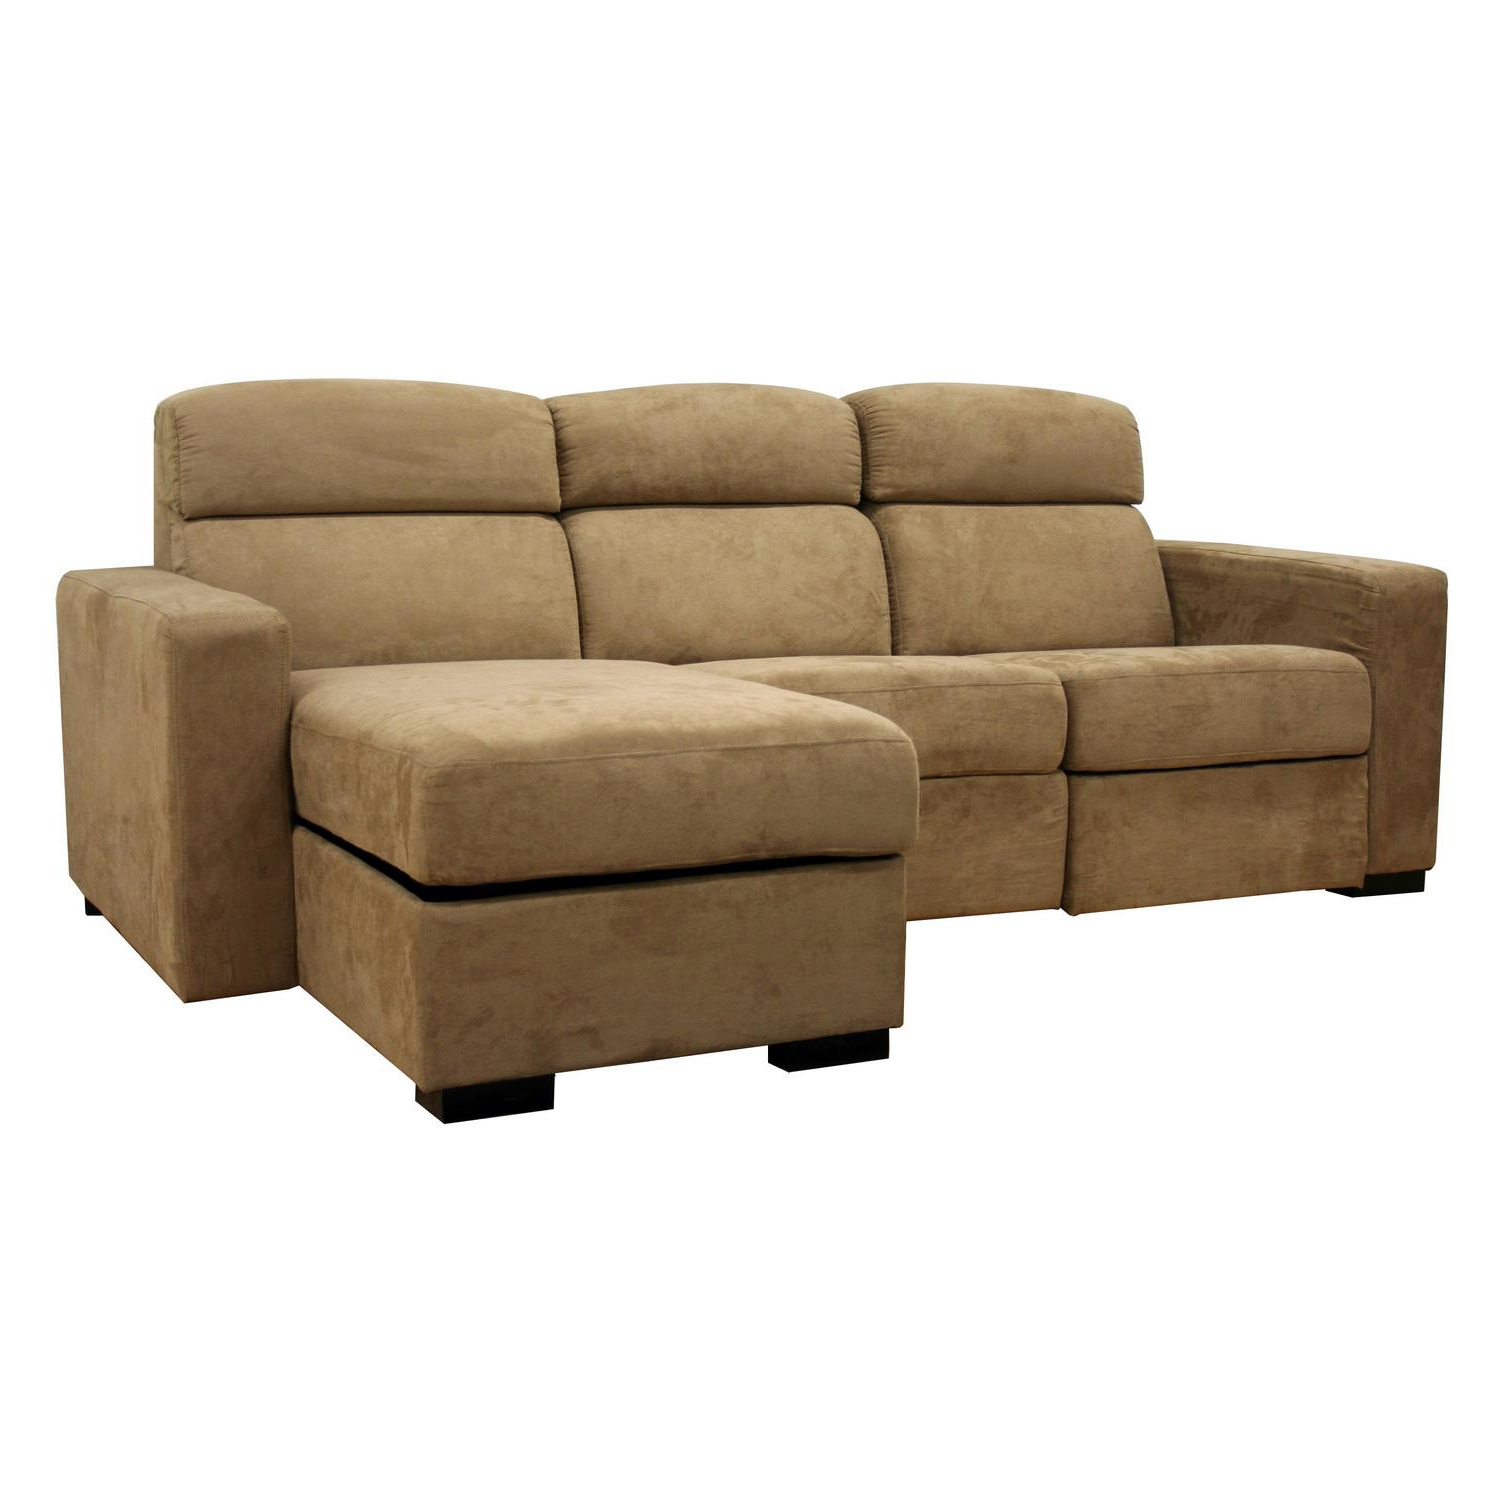 Fashionable Copenhagen Reclining Sectional Sofas With Right Storage Chaise In Holcomb Tan Microfiber Storage Chaise And Reclining (View 6 of 20)